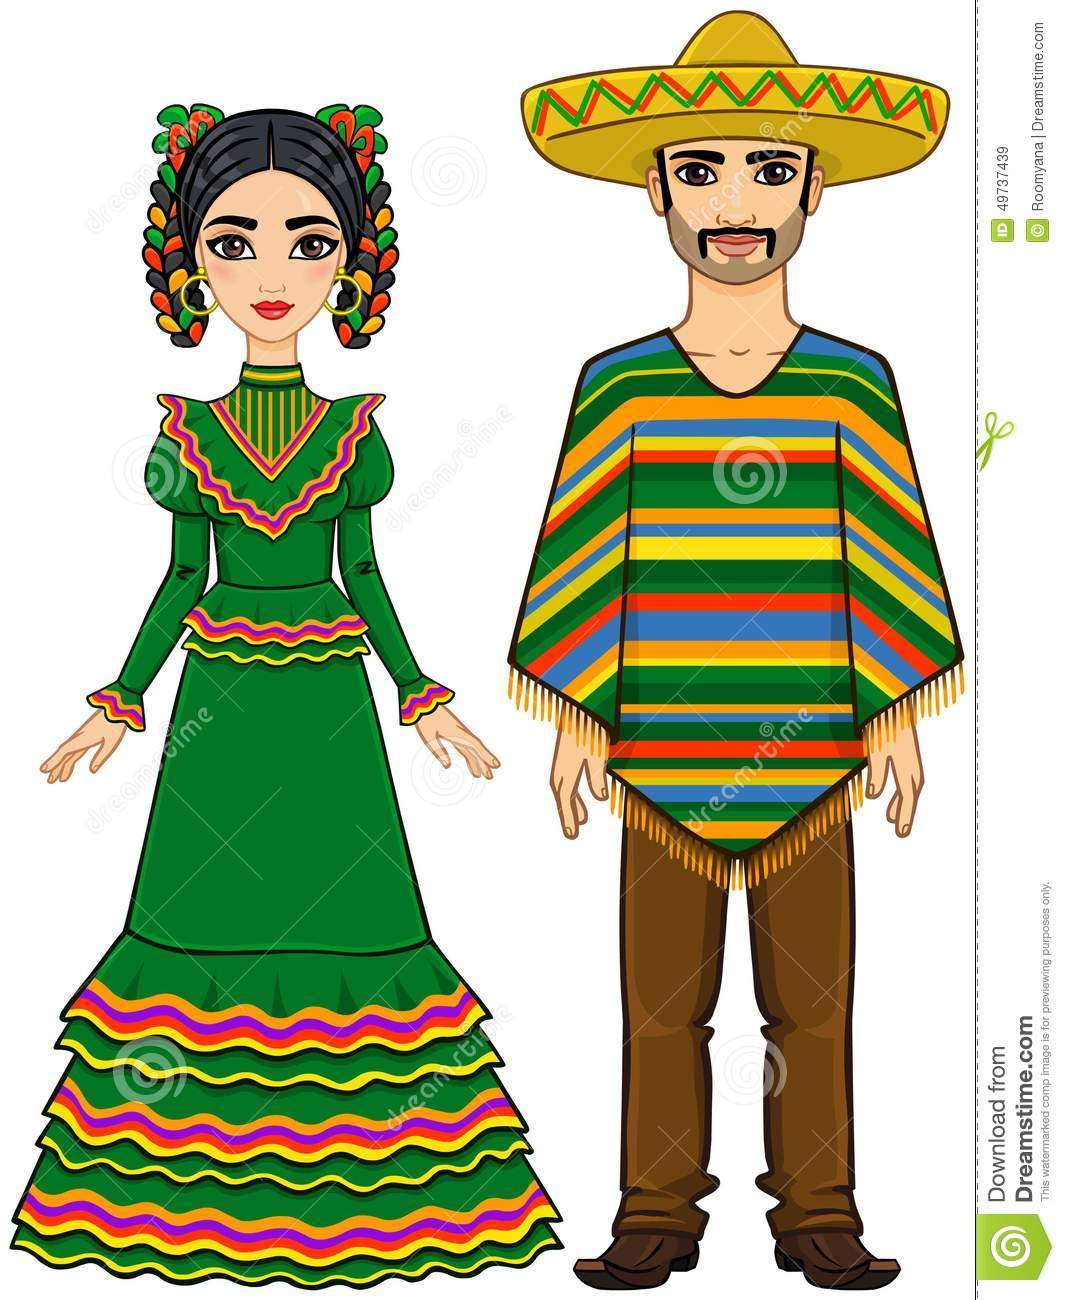 Mexico clipart clothing mexican. Culture free download best